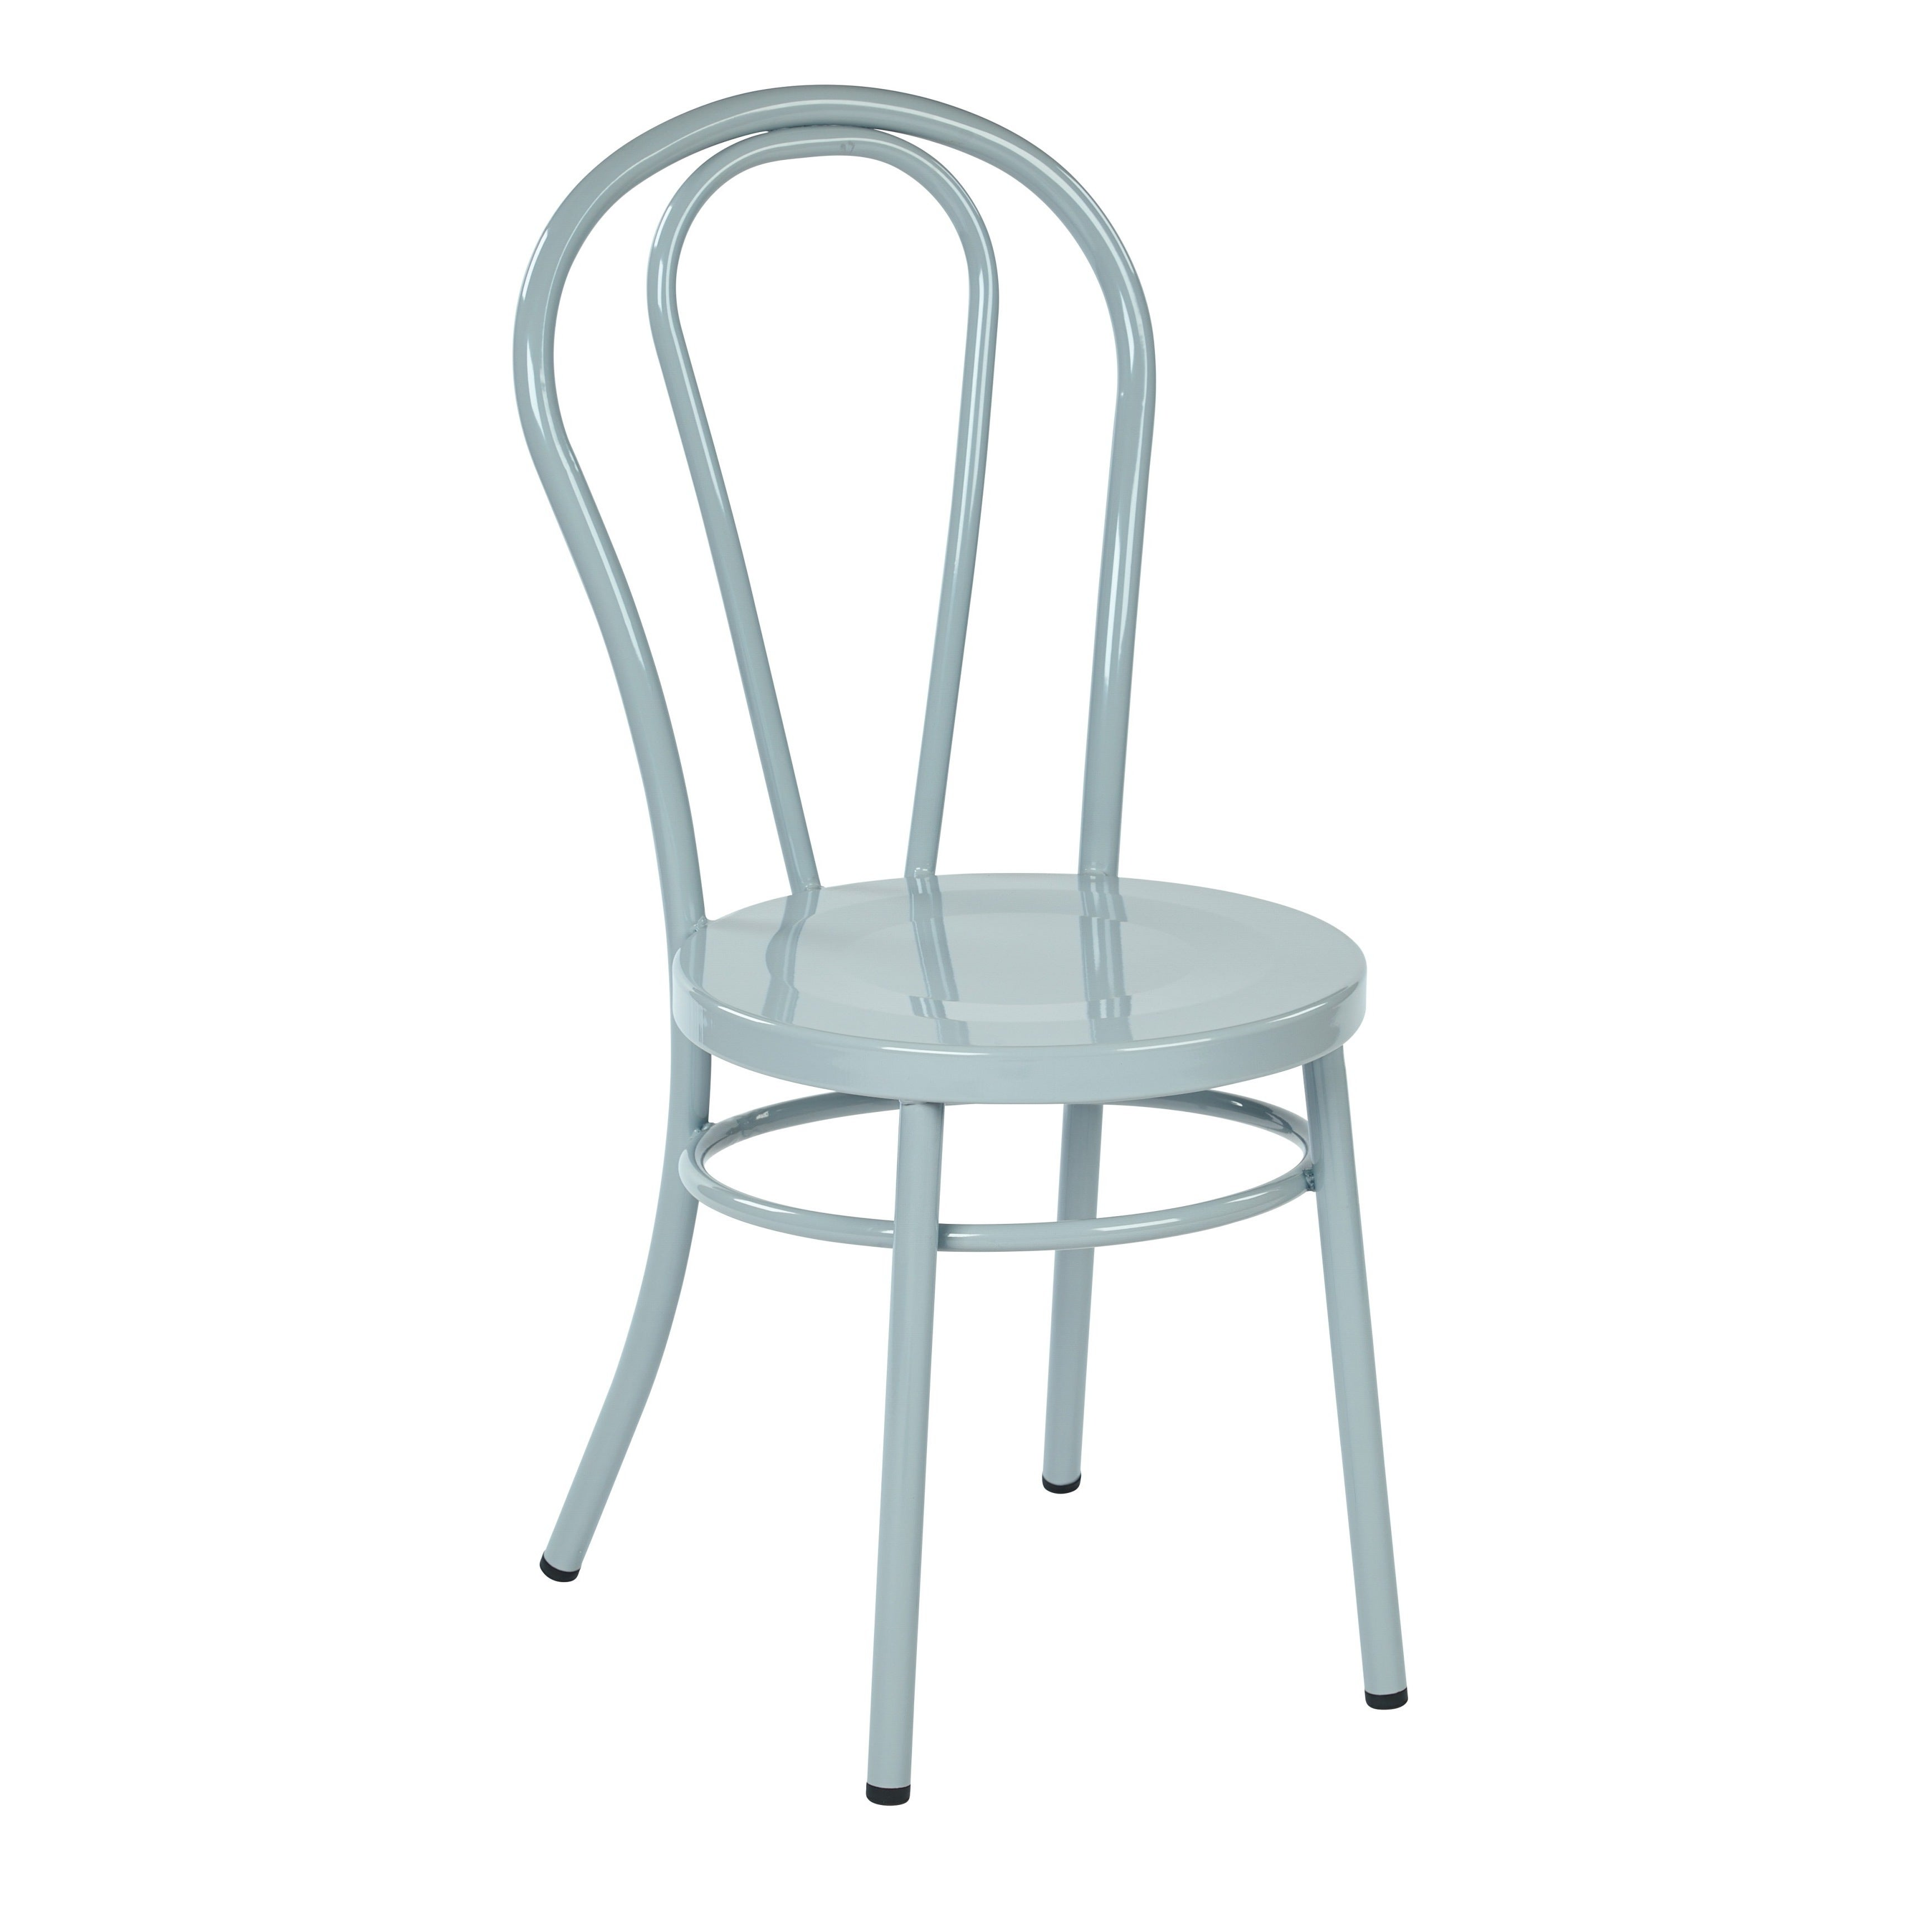 Shop osp home furnishings fully assembled metal dining chair set of 2 free shipping today overstock com 10610838